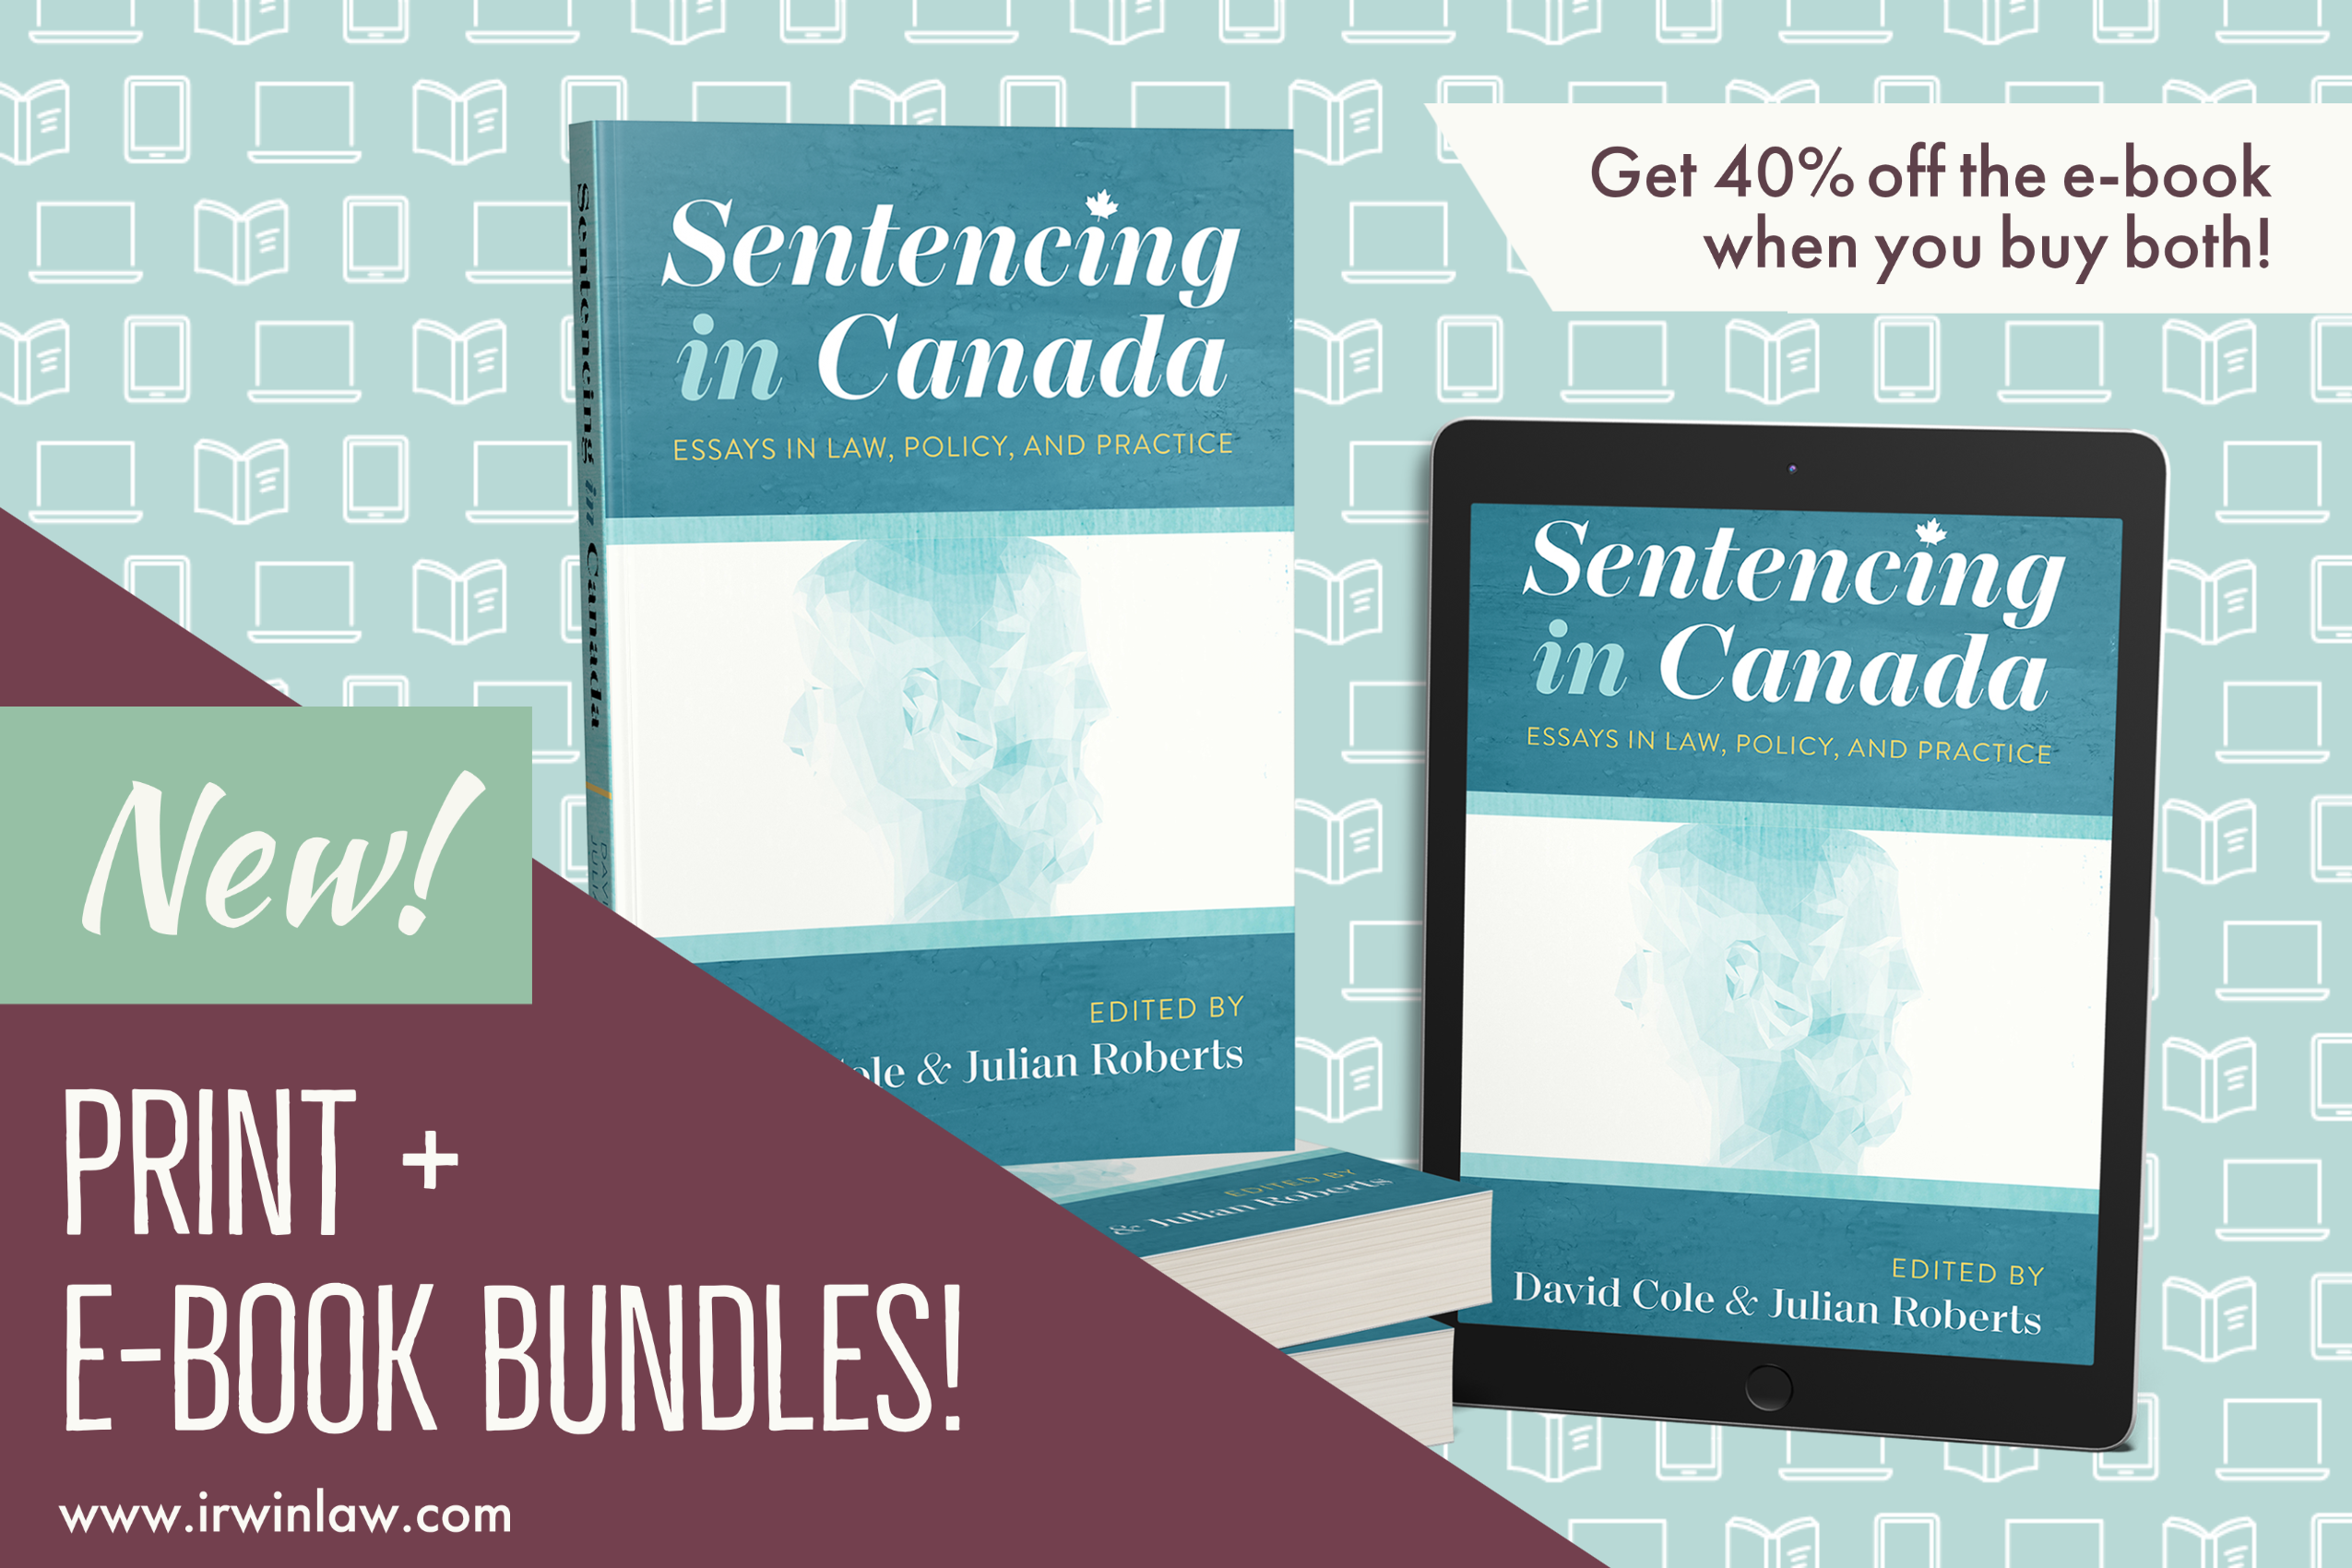 Banner graphic announcing Irwin Law's print and e-book bundles. The banner shows a stack of print copies of Sentencing in Canada (edited by David Cole and Julian Roberts) as well as the same title as an e-book on a tablet.